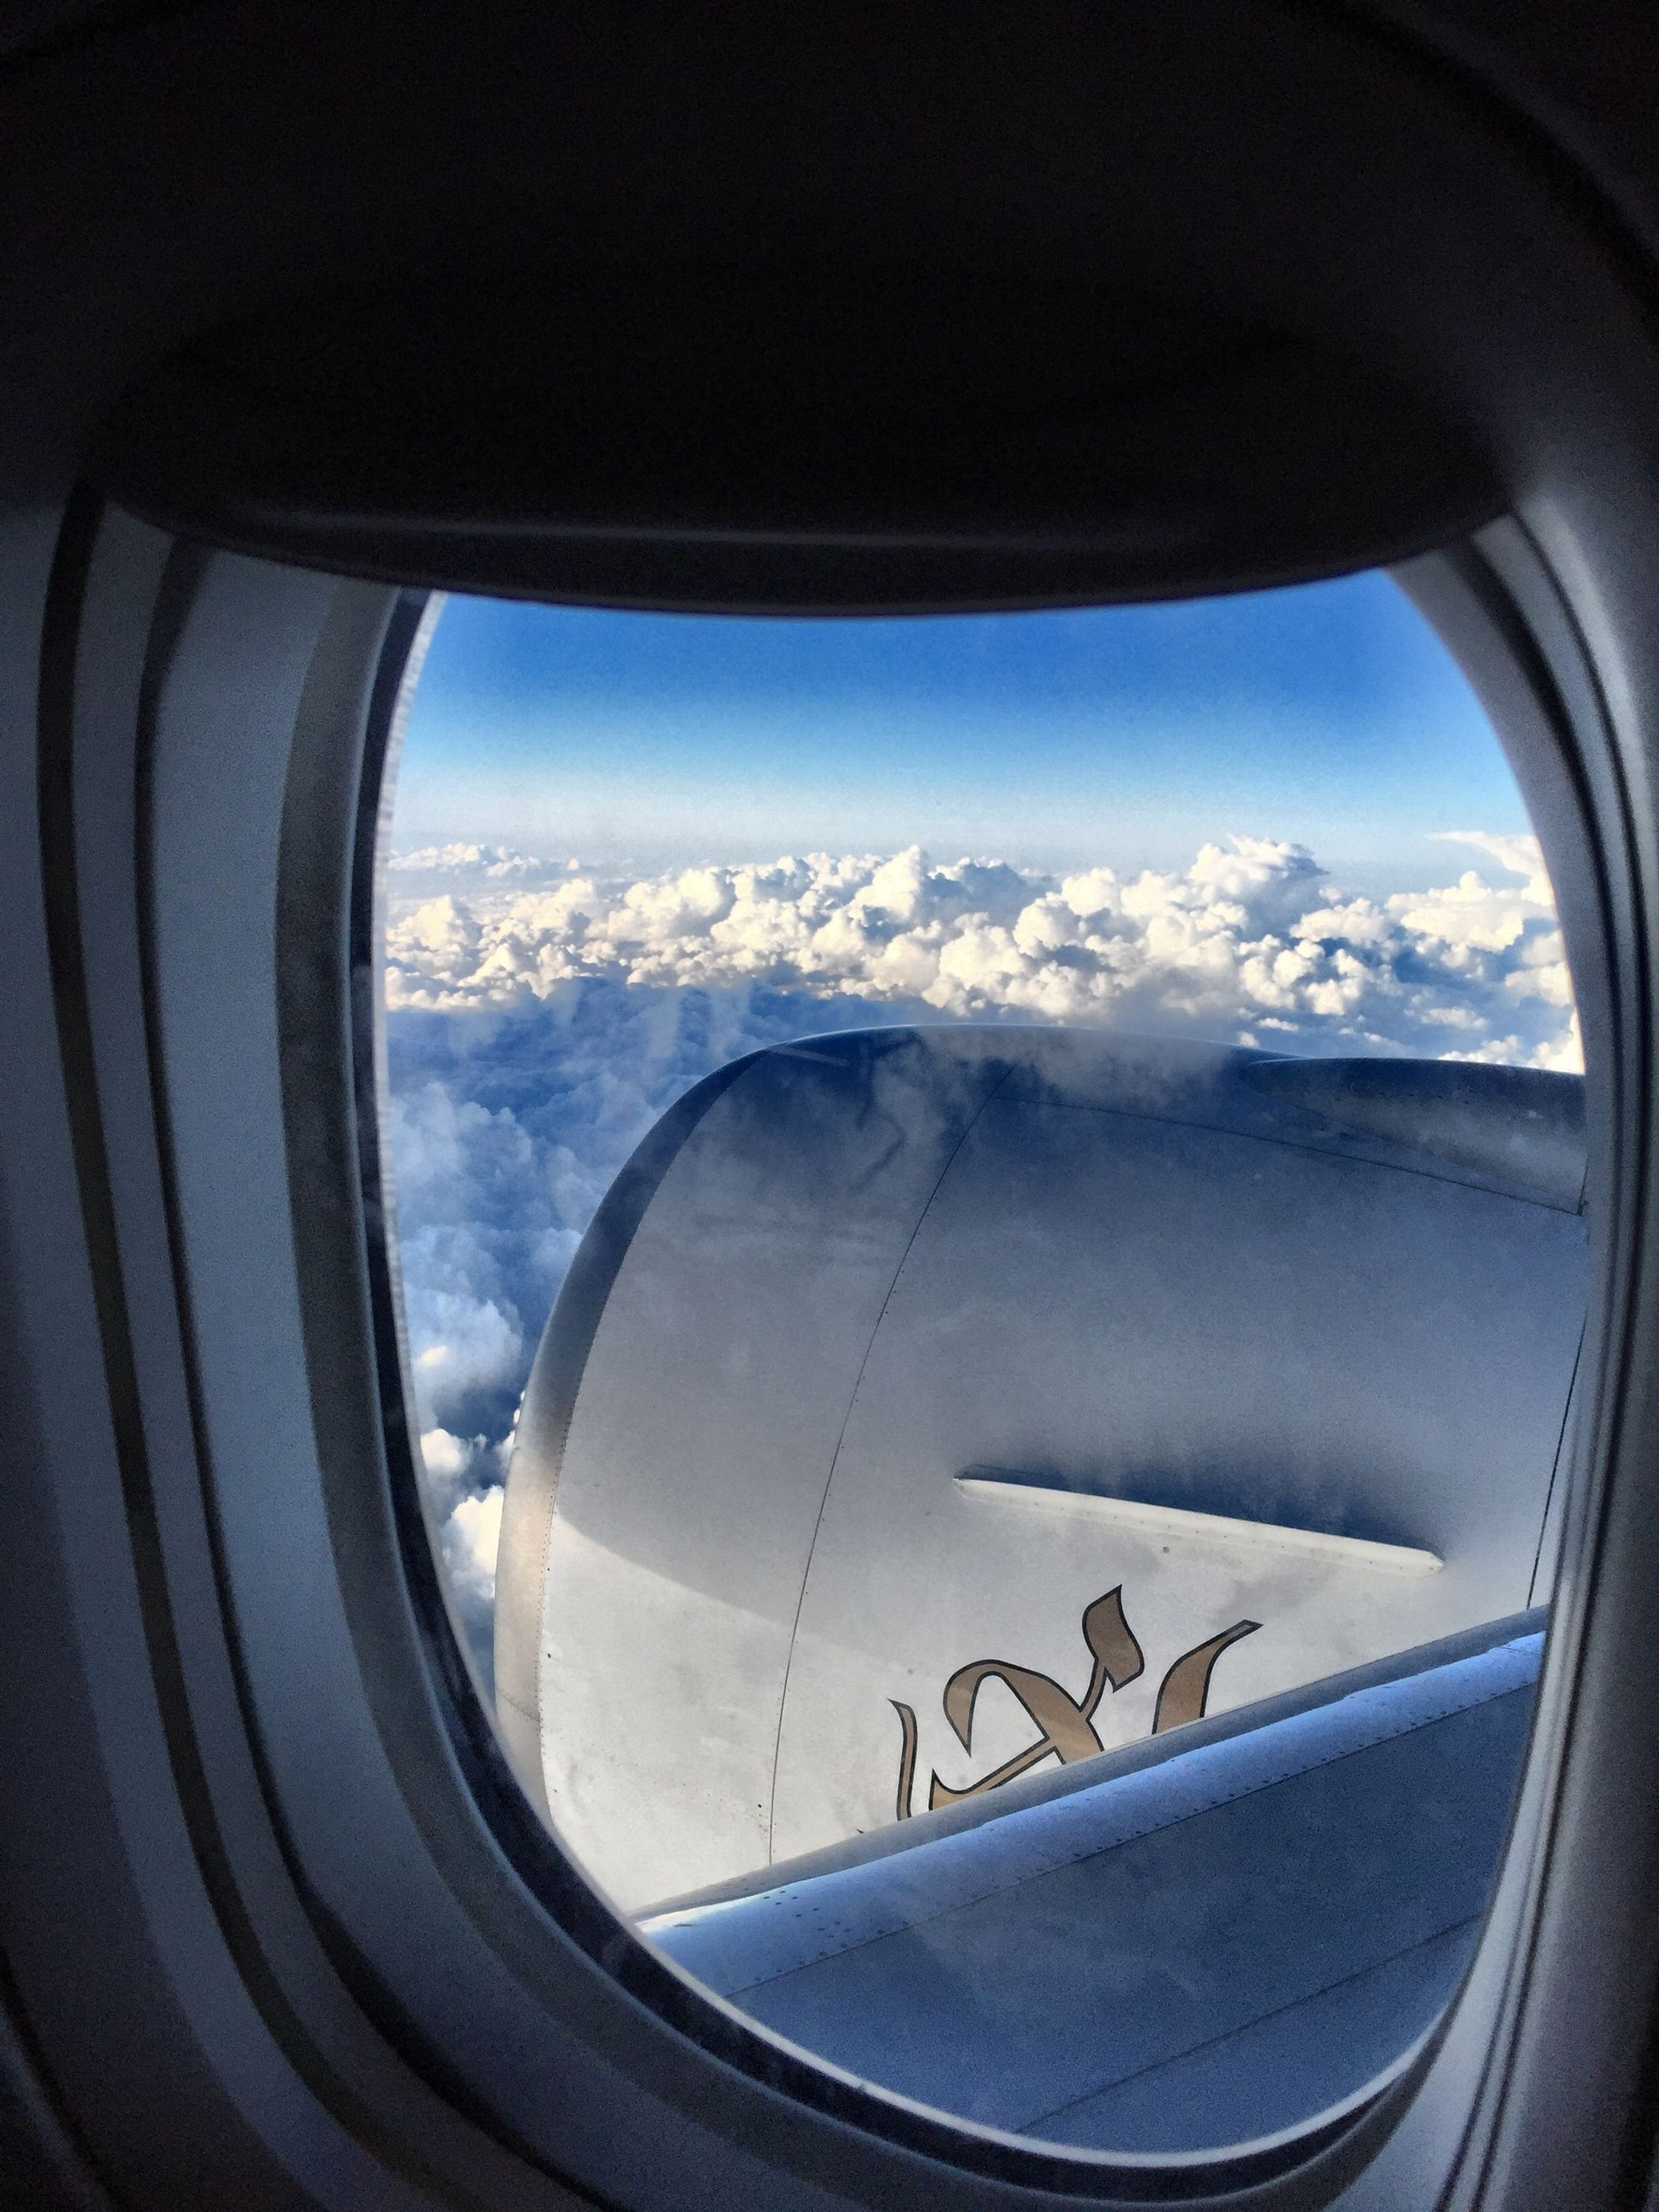 transportation, mode of transport, vehicle interior, air vehicle, airplane, window, glass - material, transparent, land vehicle, sky, travel, car, flying, landscape, part of, journey, vehicle part, on the move, aircraft wing, snow